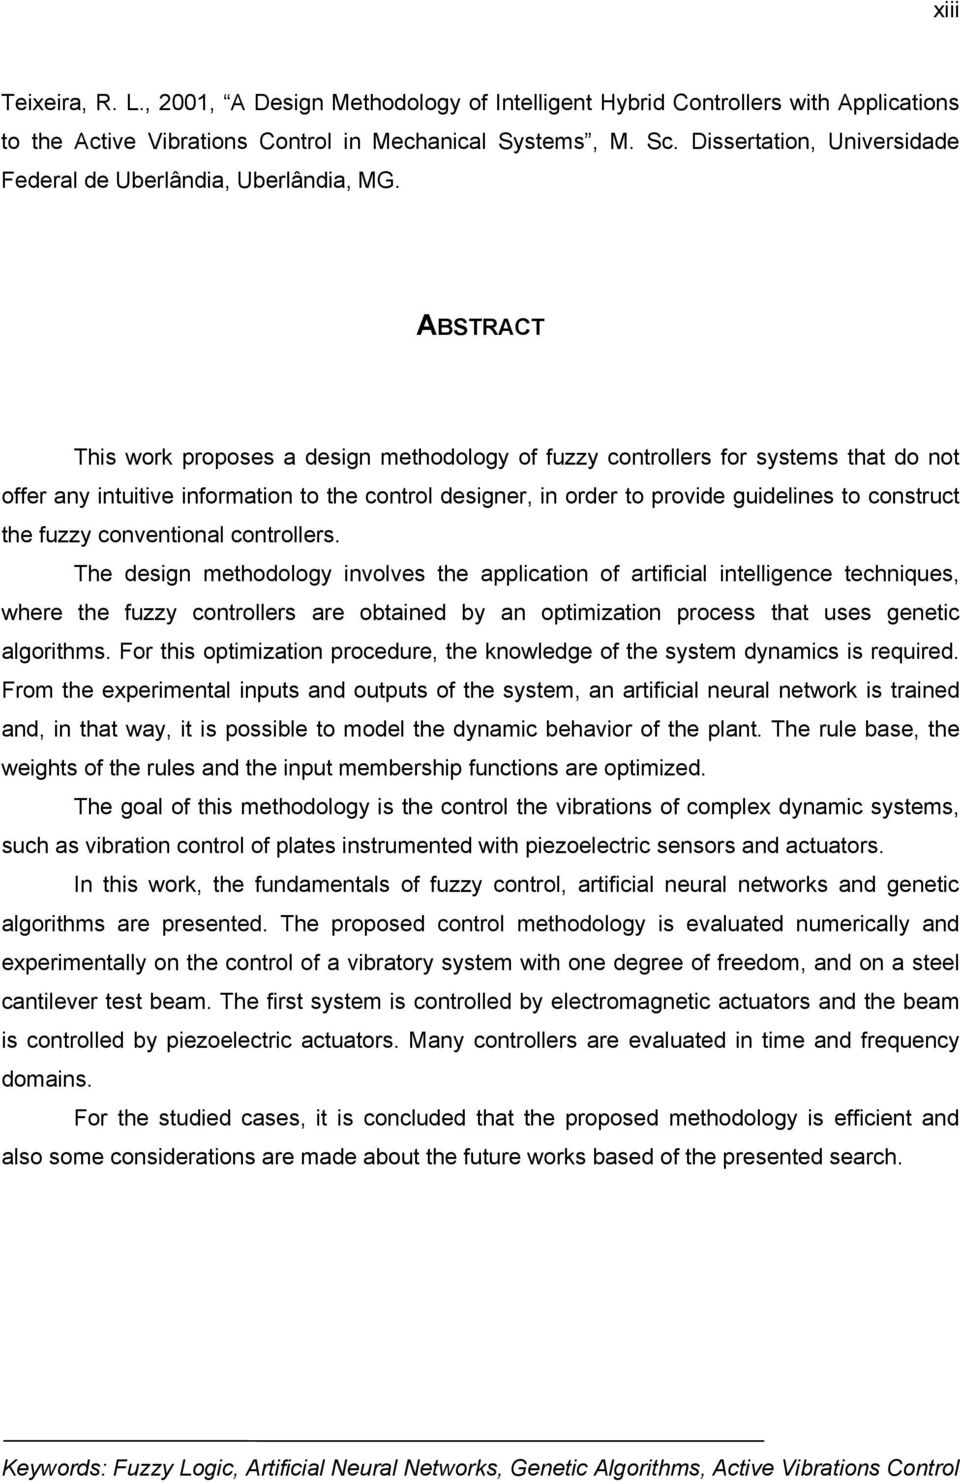 ABSTRACT This work proposes a design methodology of fuzzy controllers for systems that do not offer any intuitive information to the control designer, in order to provide guidelines to construct the